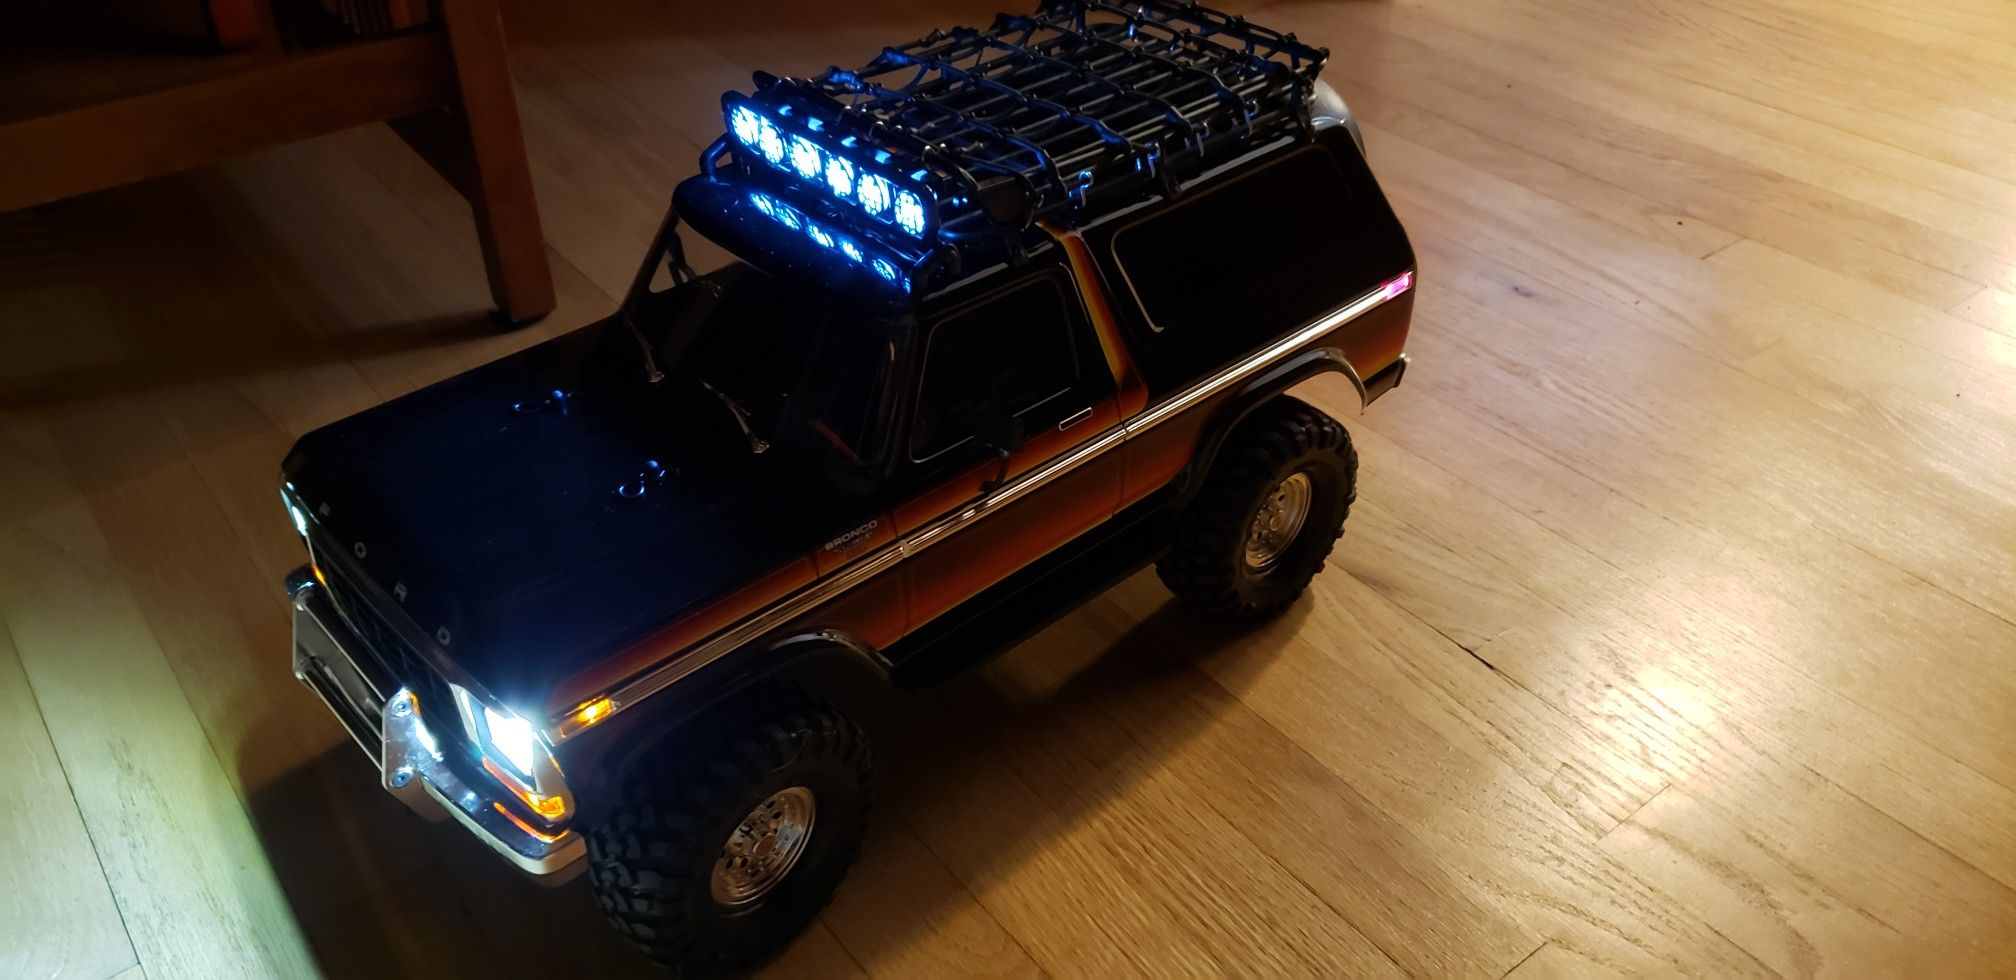 Traxxas Trx4 Ford Bronco With Roof Rack Cargo Net Roof Mount Light Bar And Many 1 10 Scale Accessories Coming As Going Ford Bronco 1979 Ford Bronco Traxxas